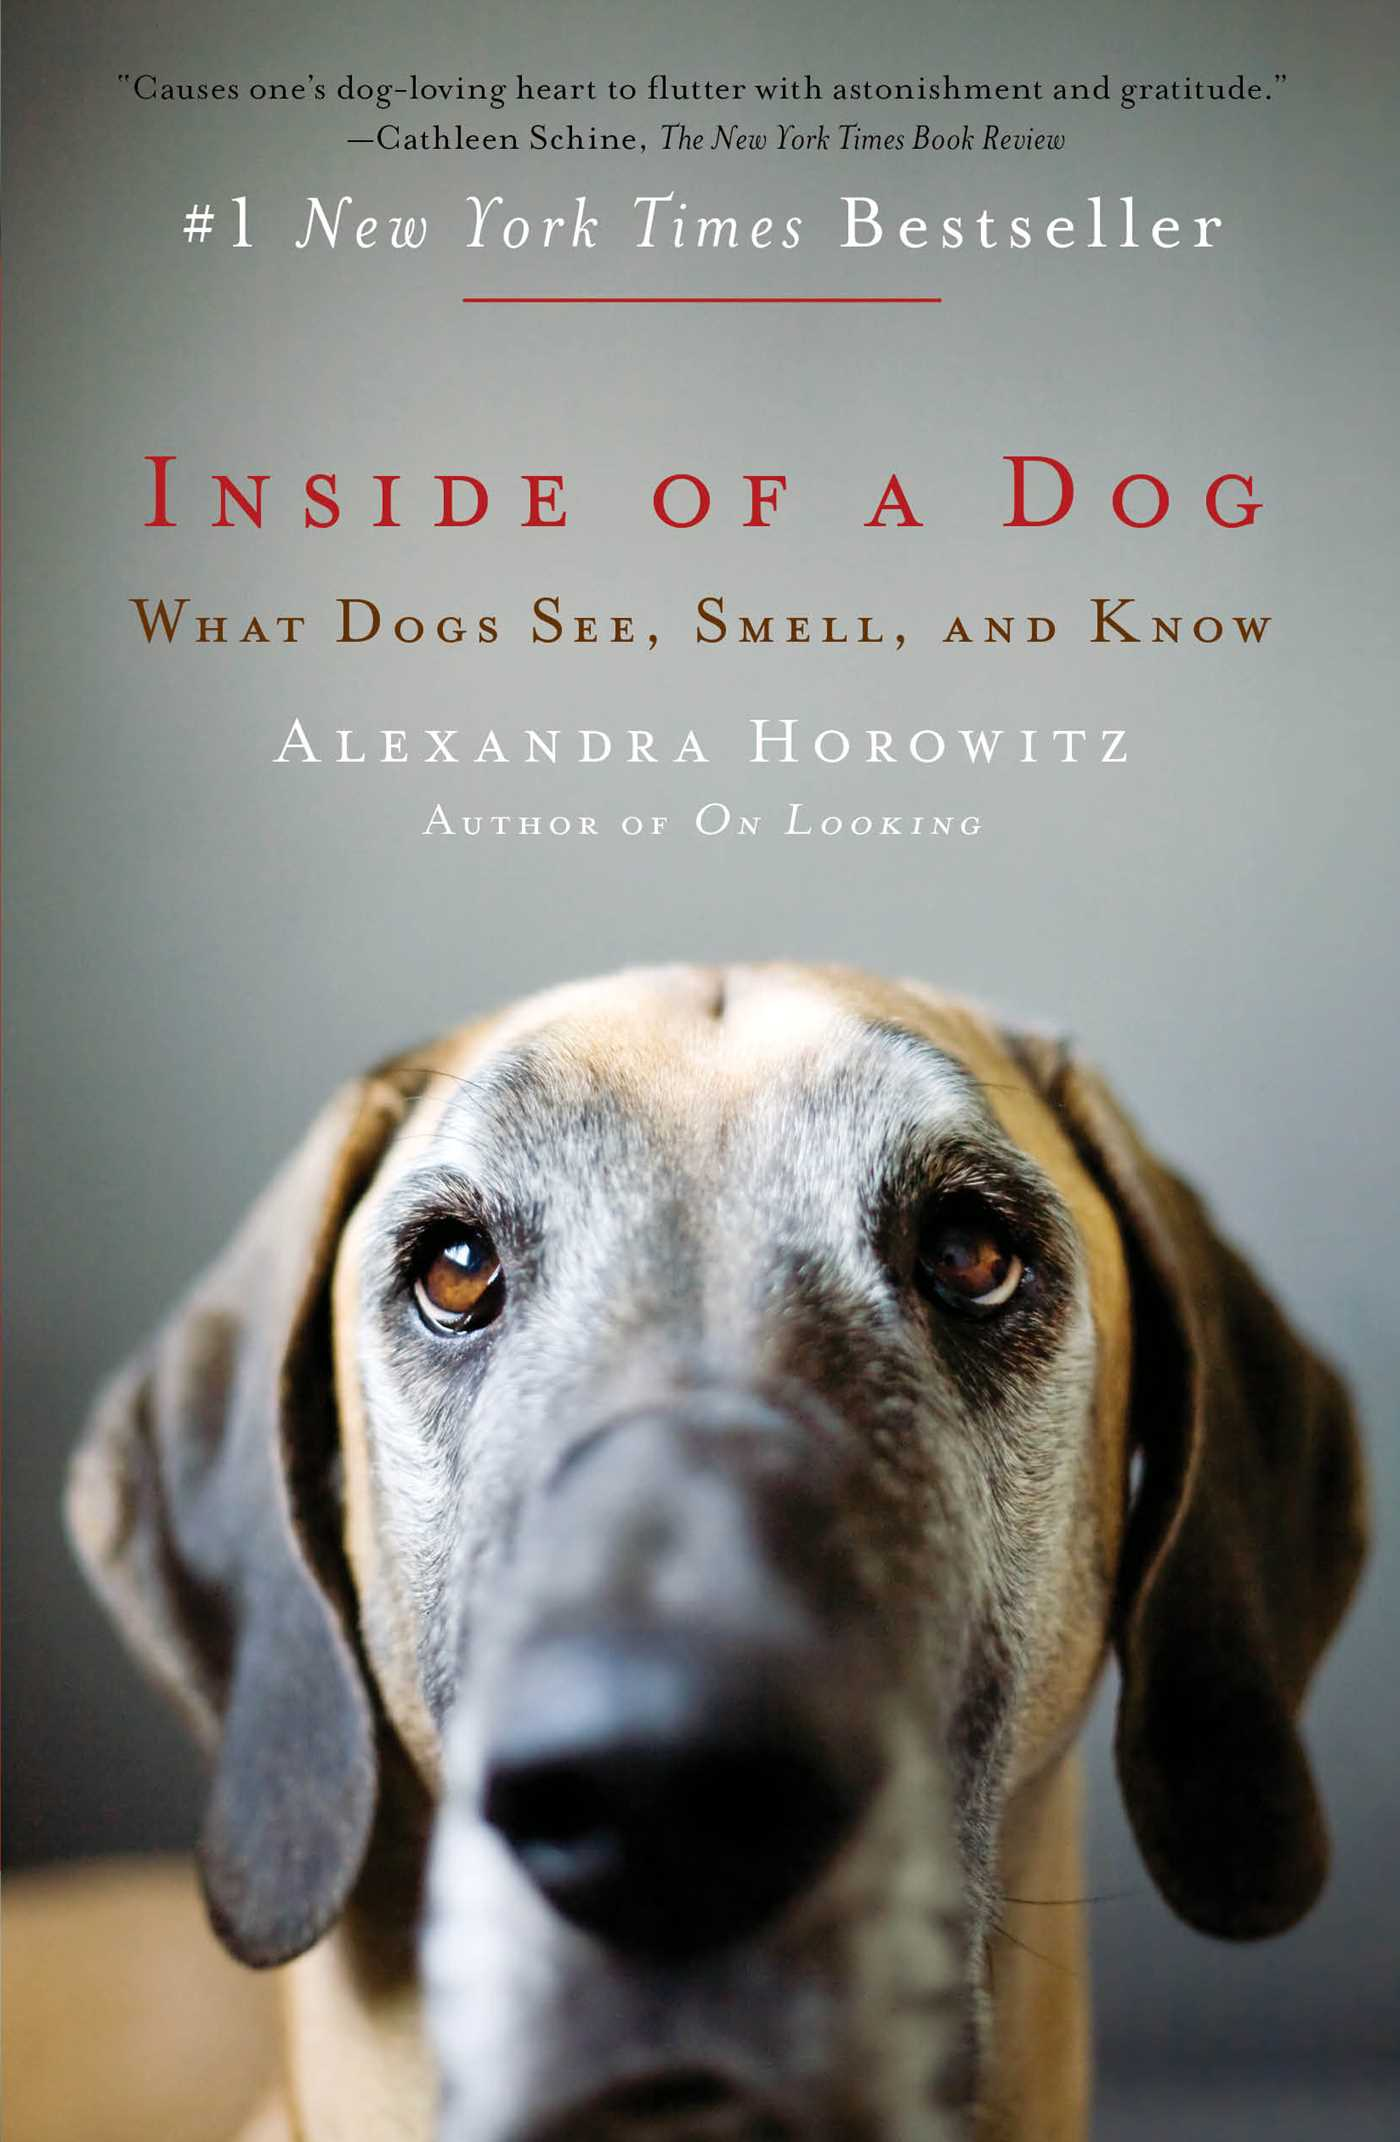 Inside-of-a-dog-9781416588276_hr